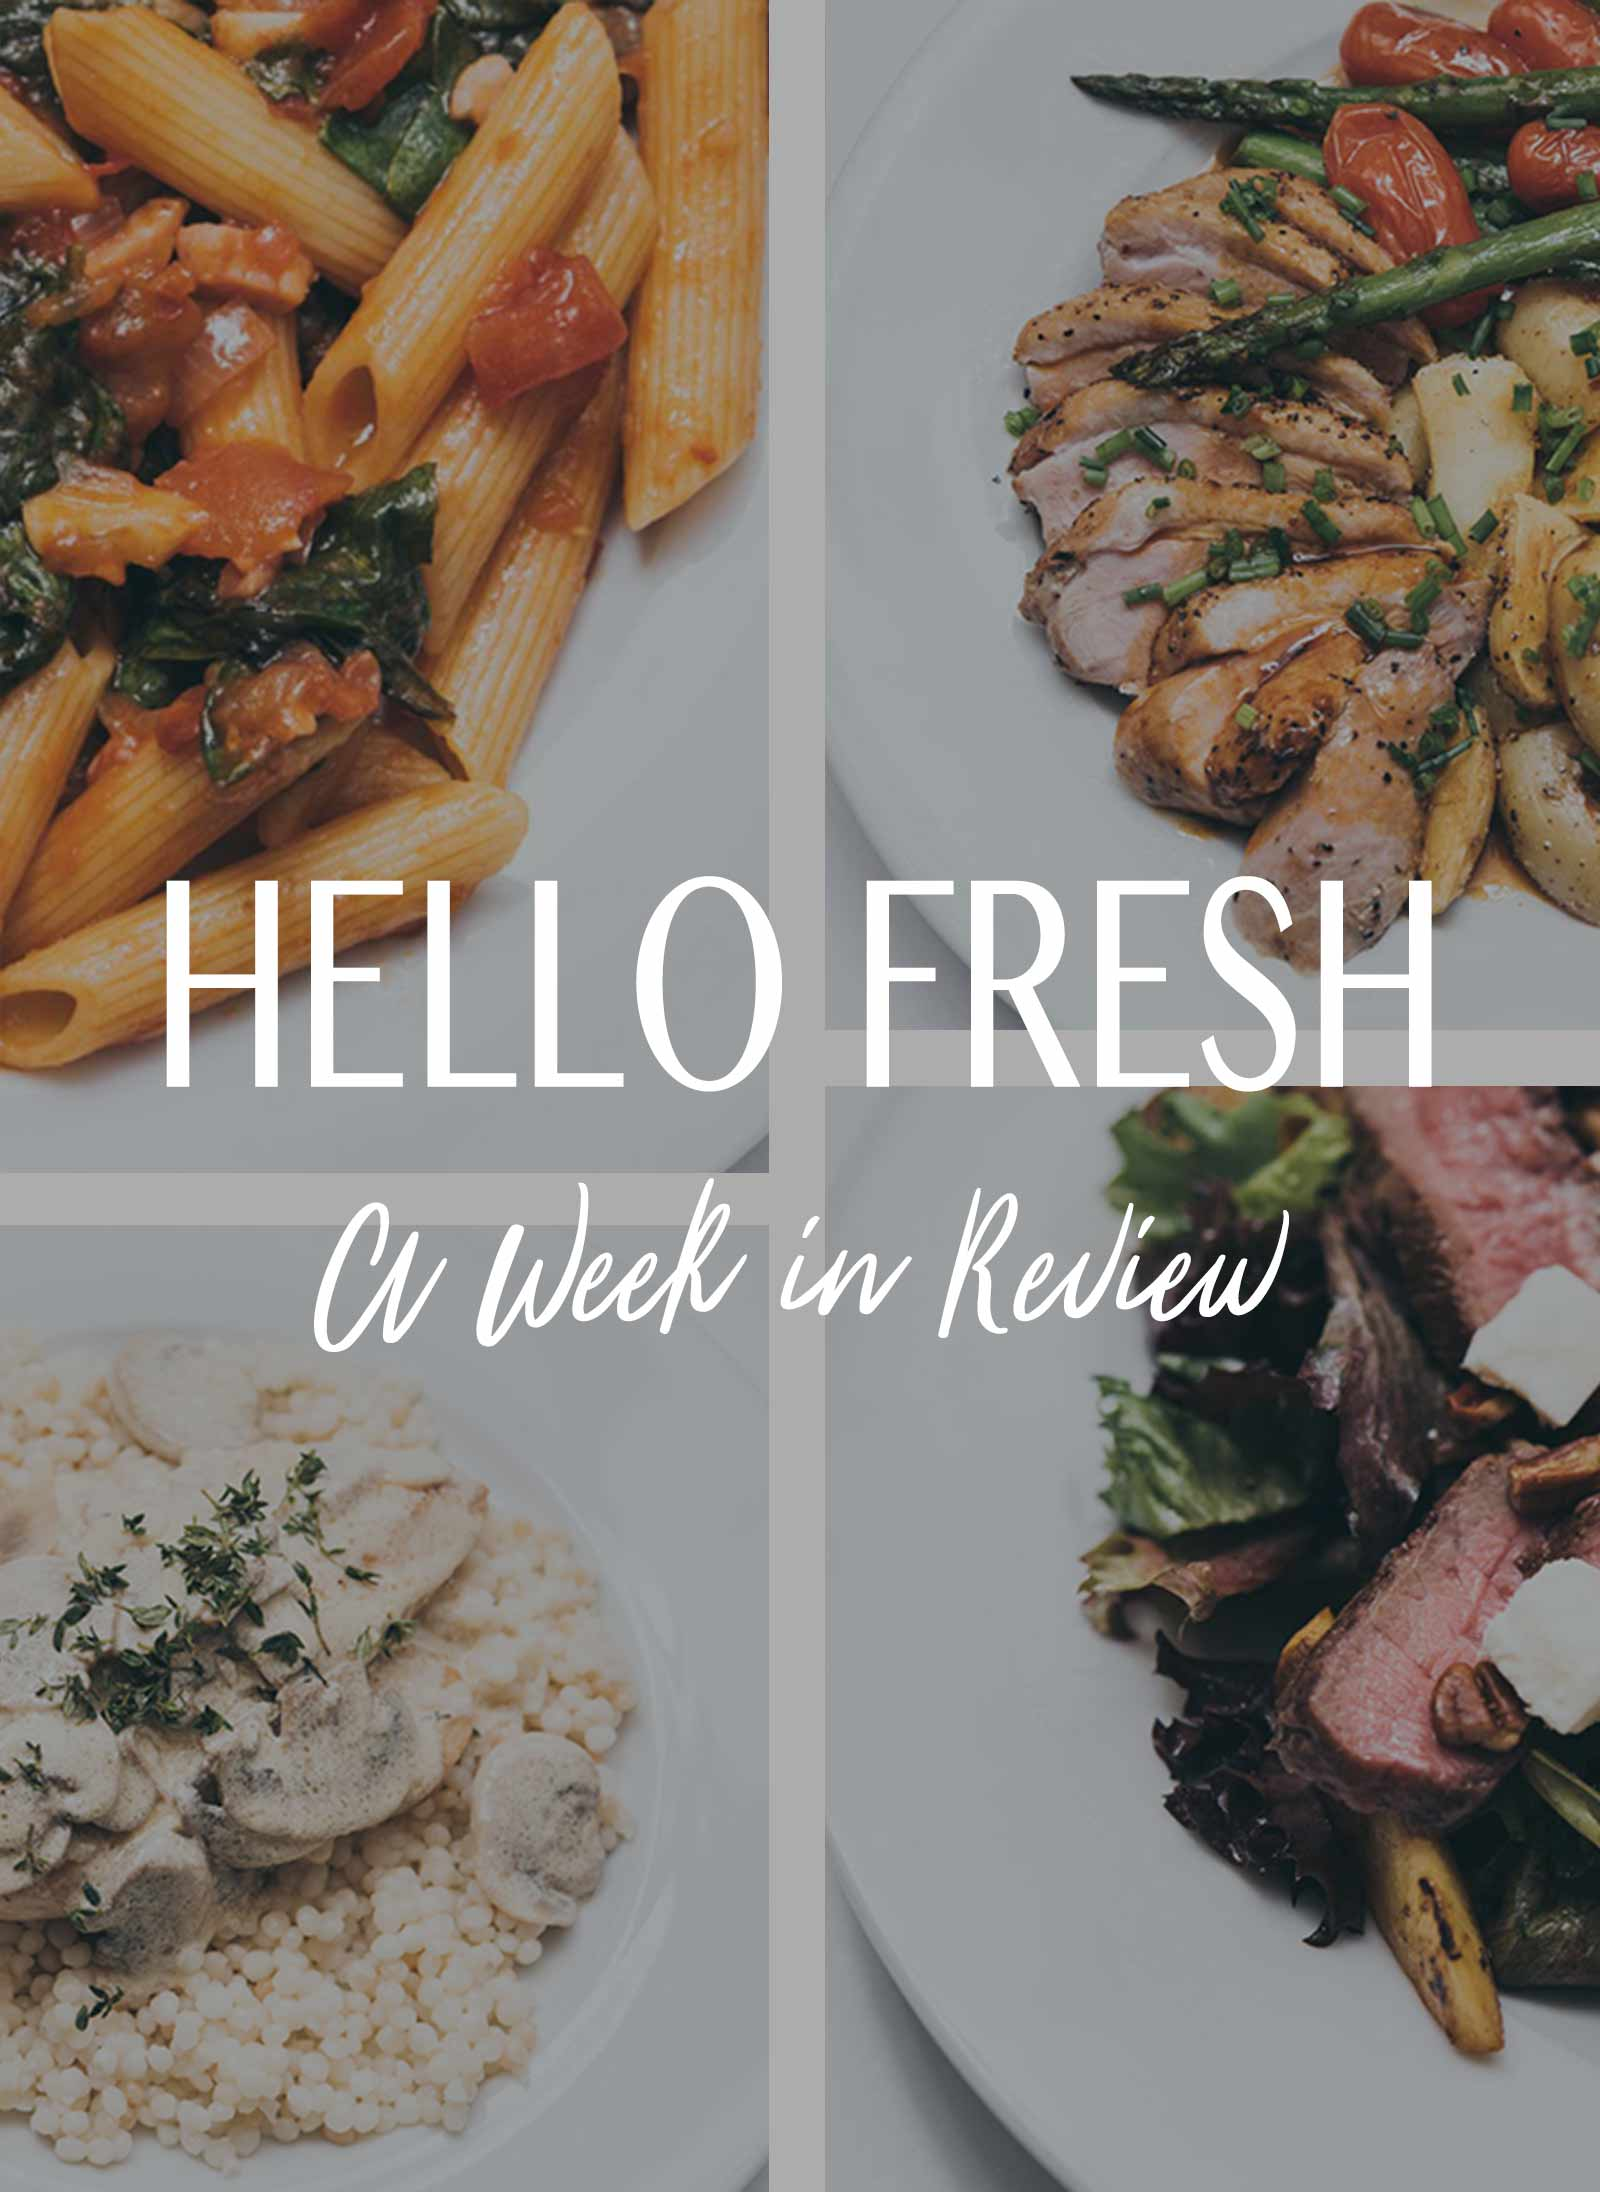 Hellofresh  Meal Kit Delivery Service Specification Video